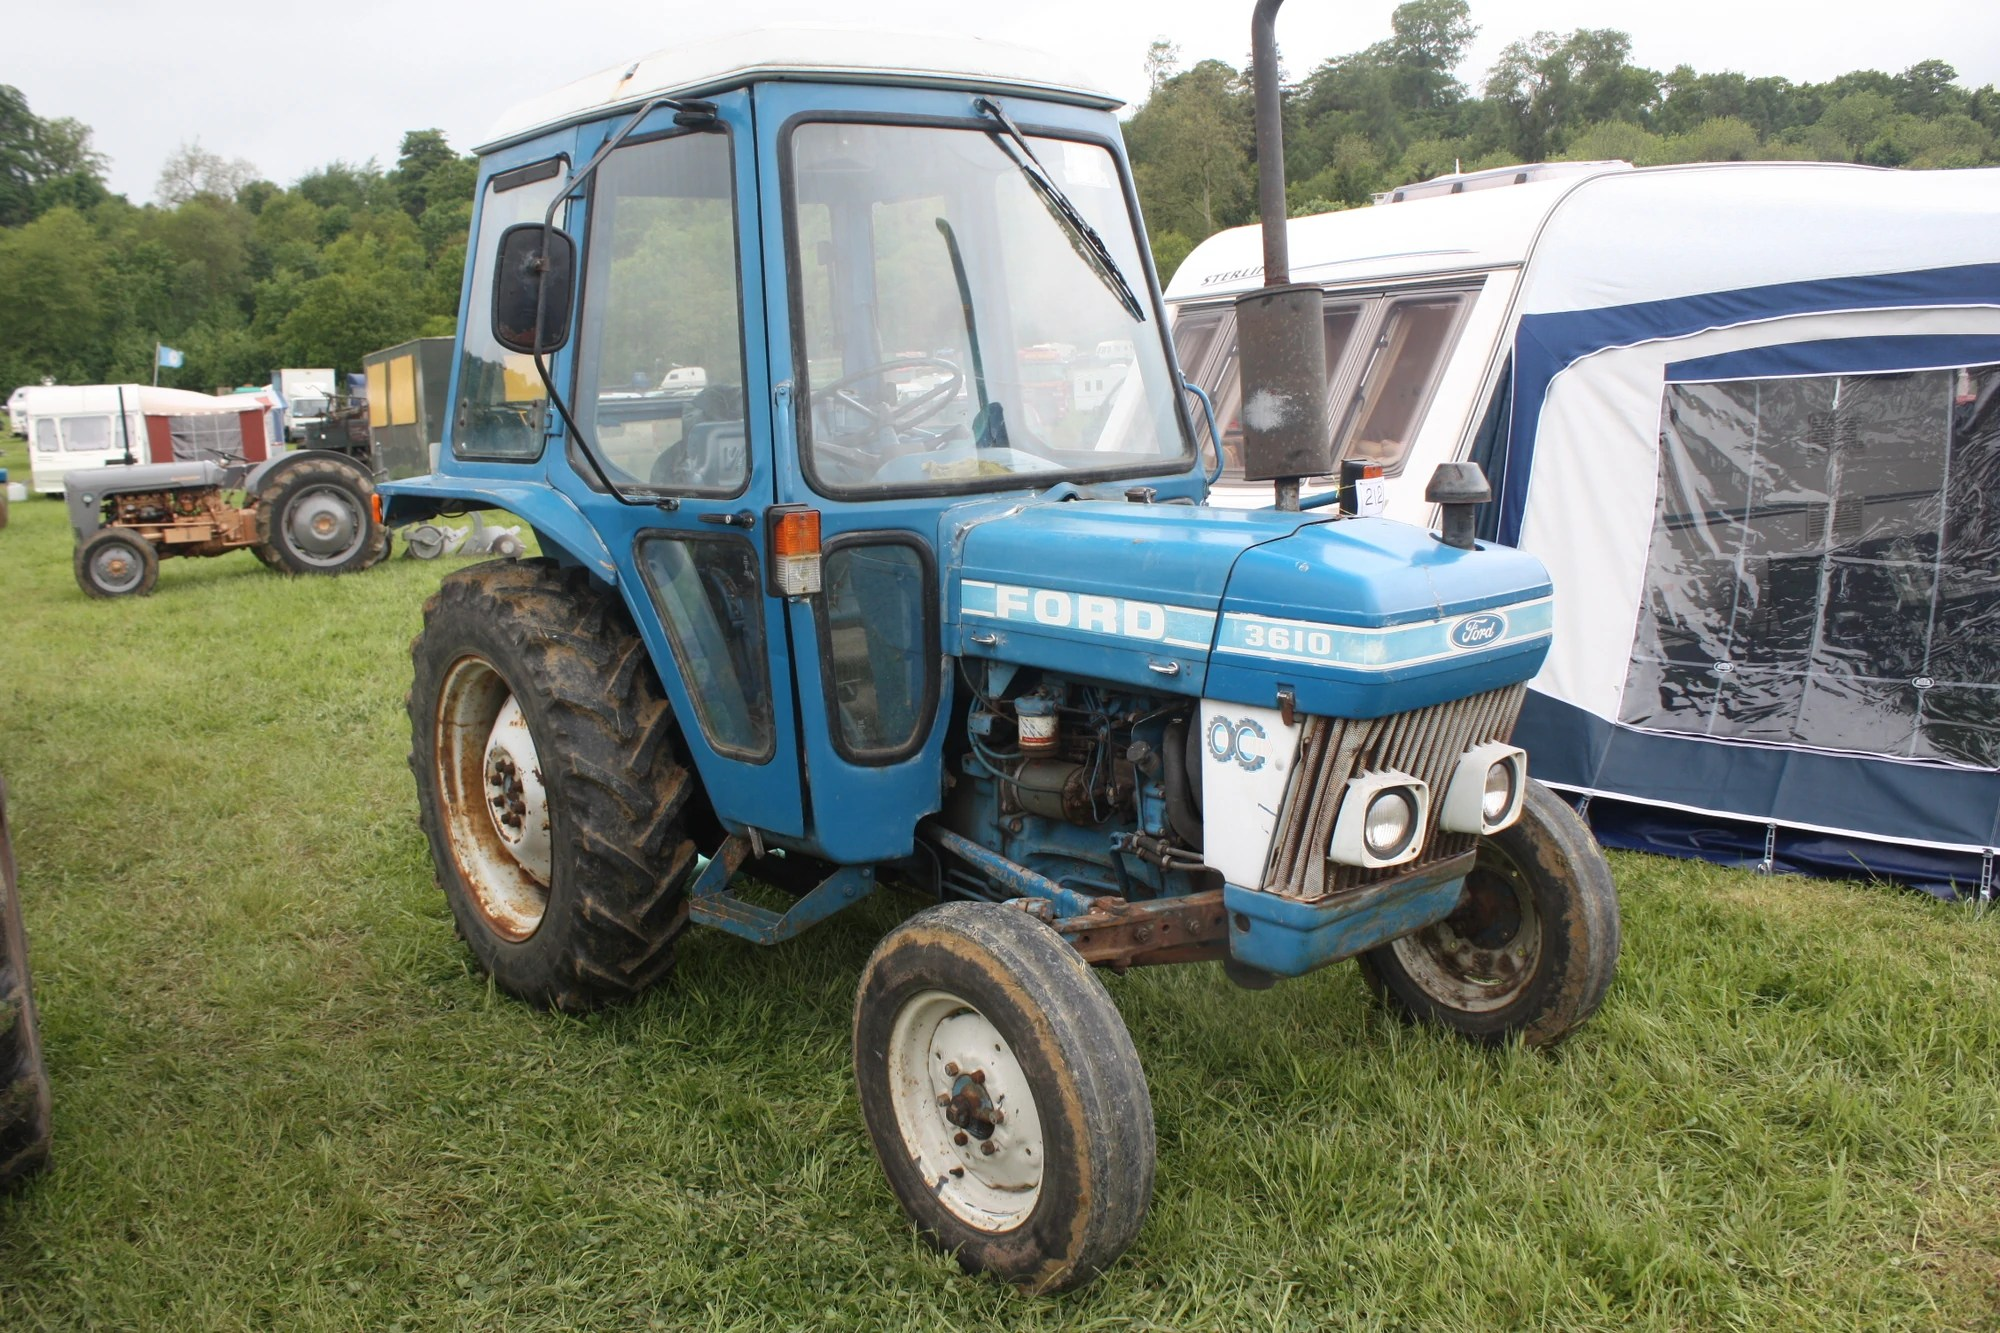 hight resolution of ford 3610 tractor construction plant wiki fandom powered by wikia ford 4000 tractor wiring diagram ford tractor 3610 wiring harness